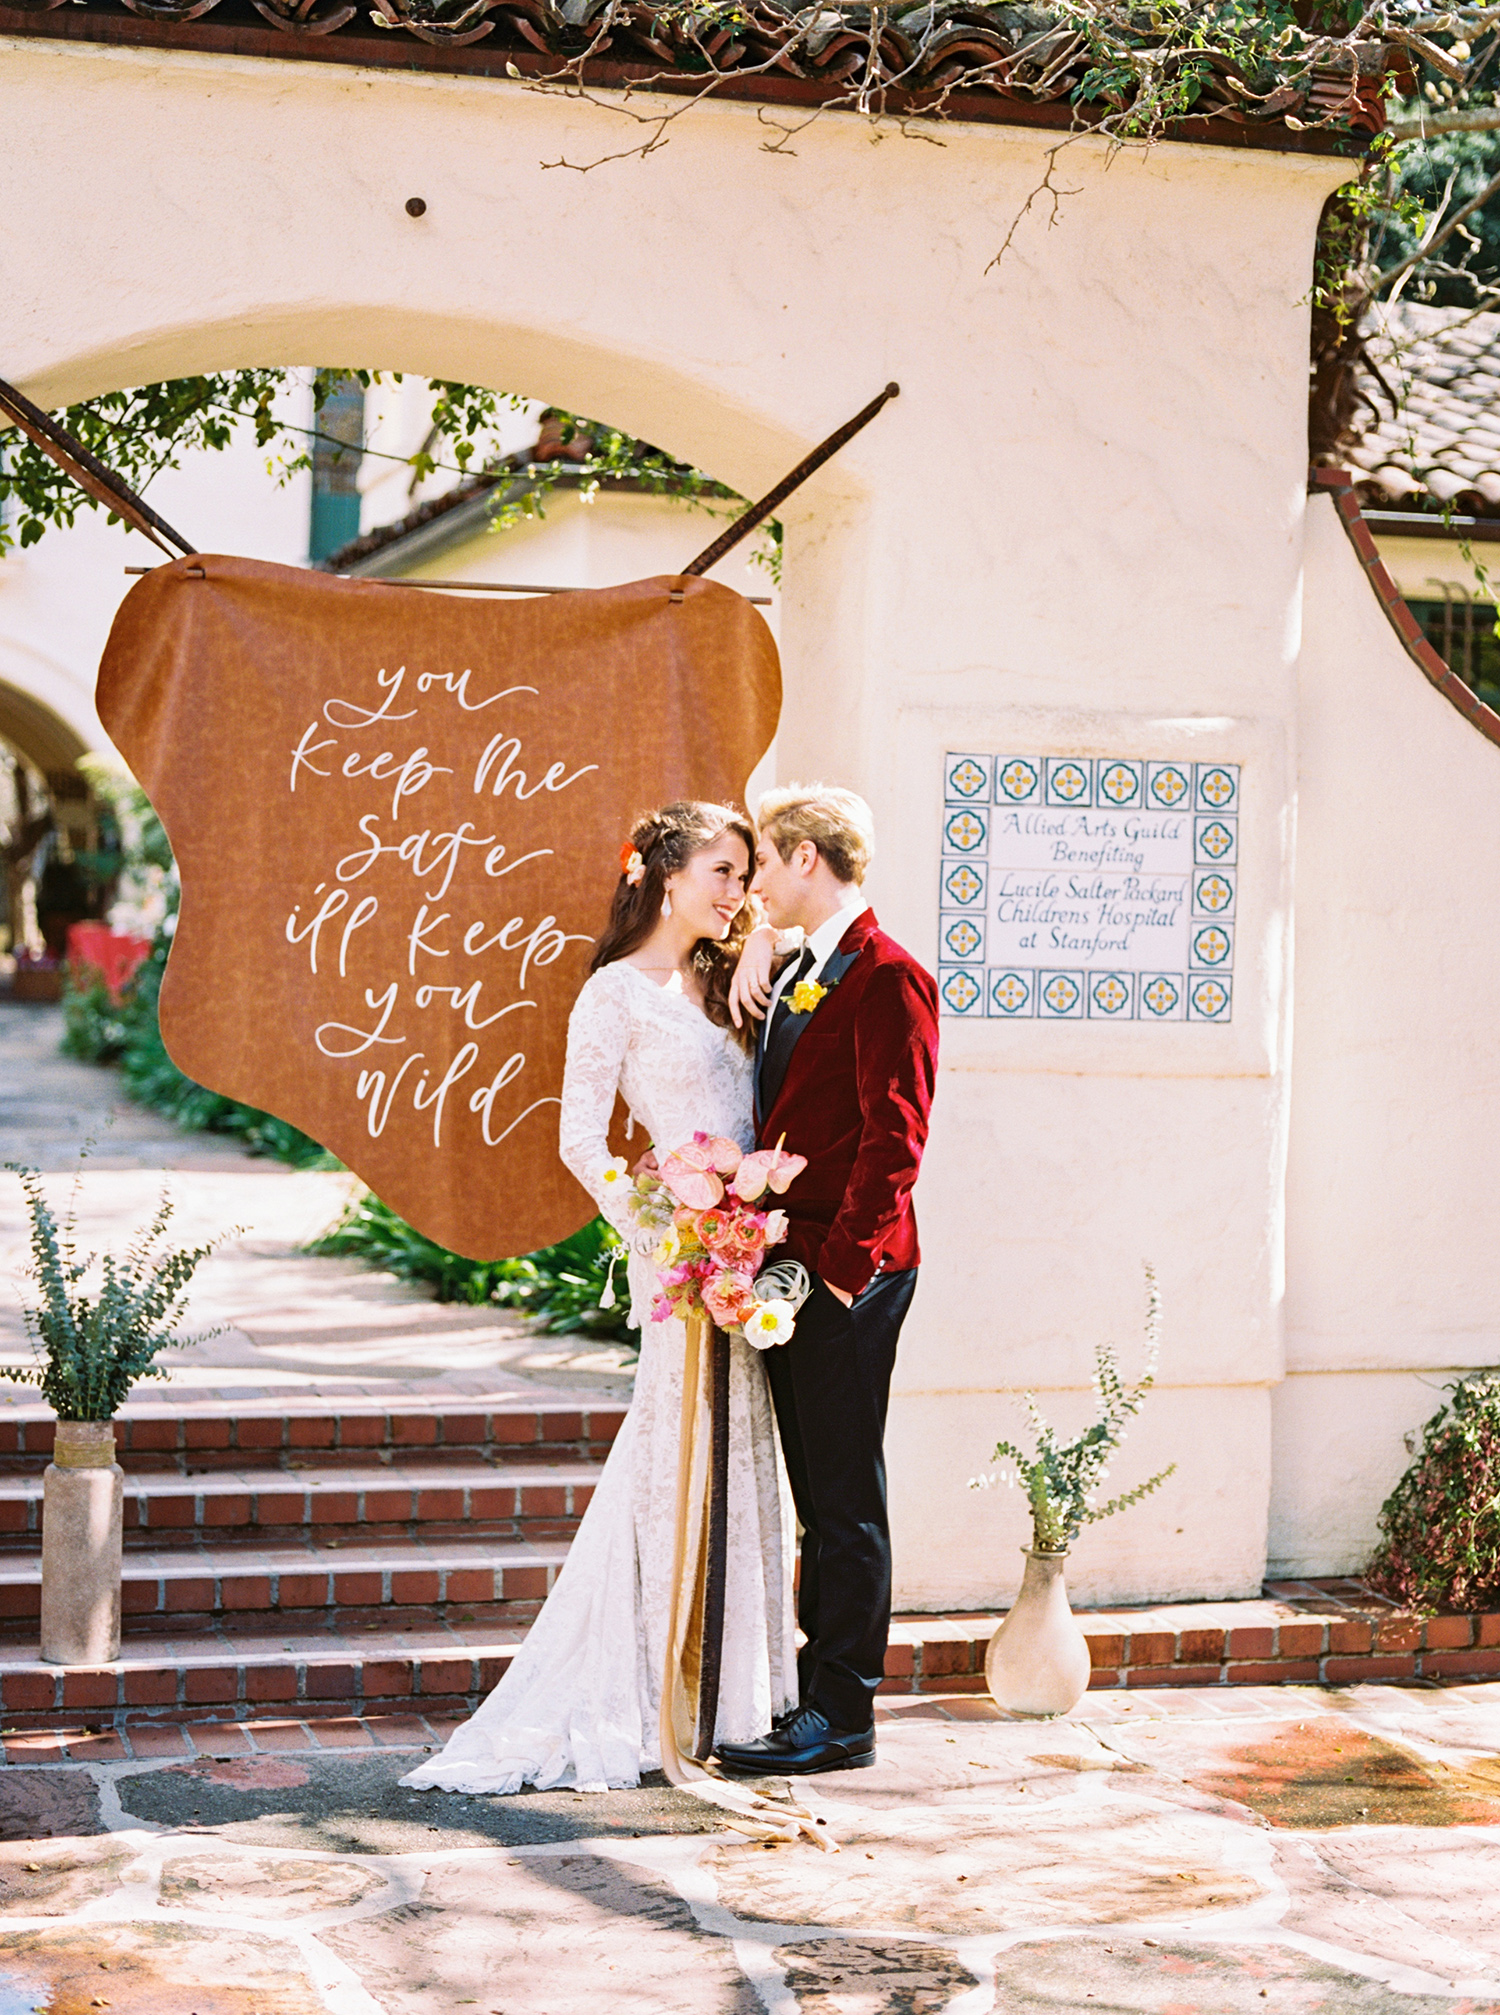 Leather wedding signs for boho wedding theme